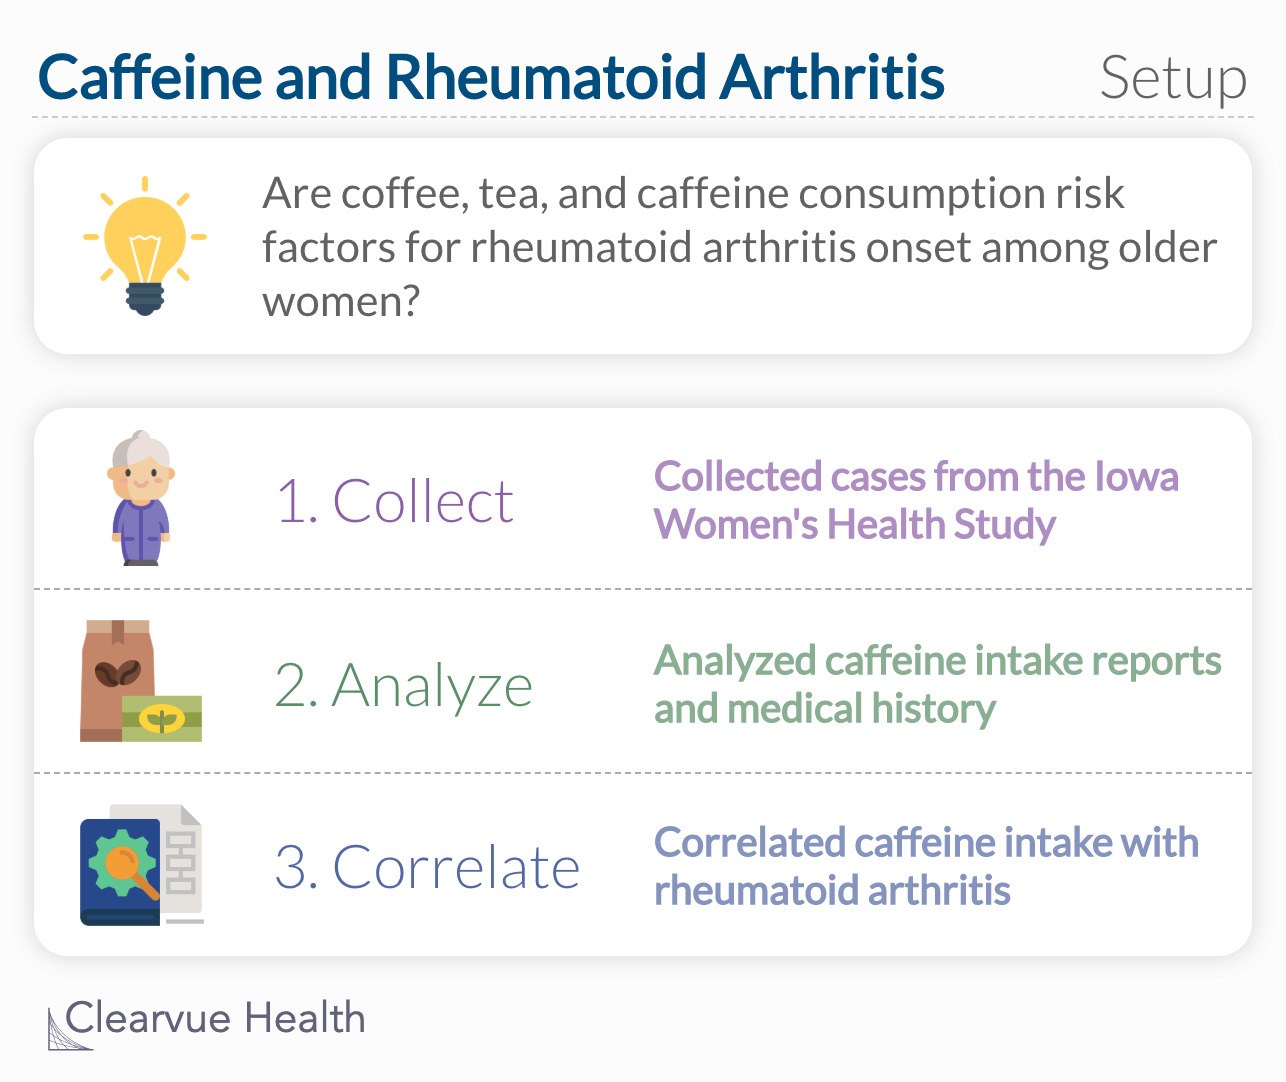 To evaluate whether coffee, tea, and caffeine consumption are risk factors for rheumatoid arthritis (RA) onset among older women.